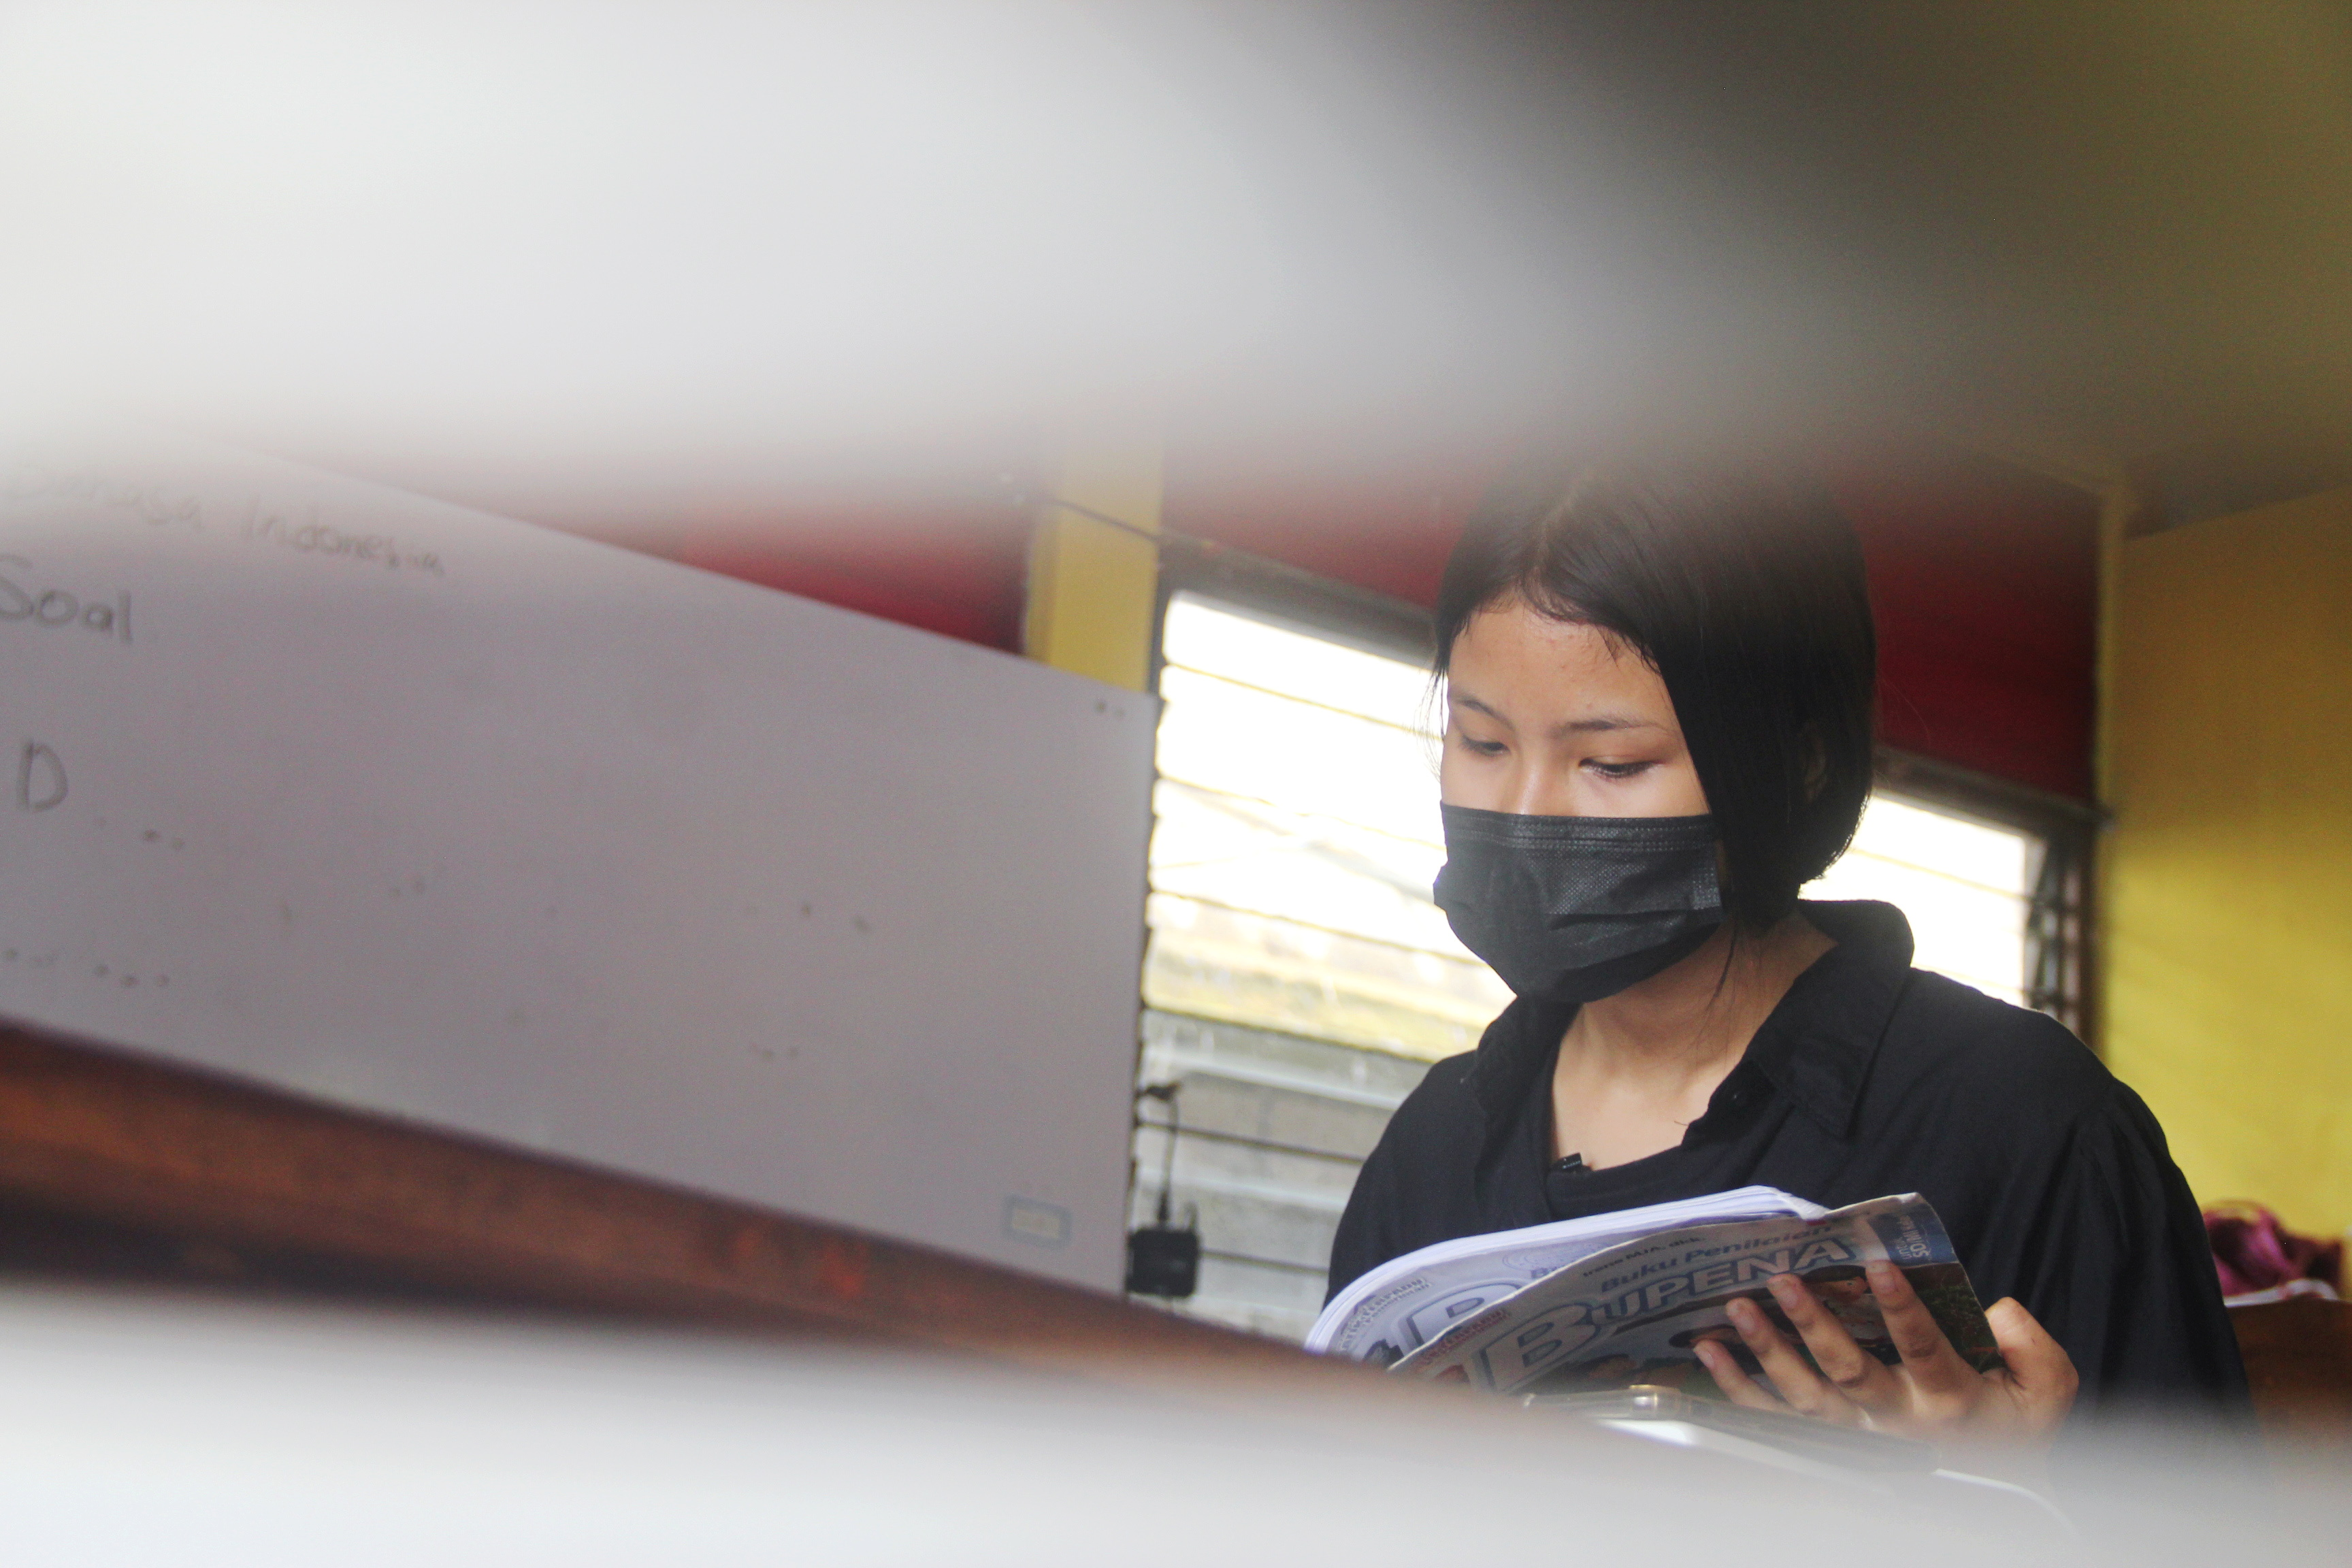 Ni Kadek Suriani, 13, wearing a protective face mask, reads a book as she studies at a Bali Street Mums and Kids shelter after dropping out from school during the coronavirus disease (COVID-19) pandemic, in Denpasar, Bali, Indonesia, September 10, 2021. Picture taken September 10, 2021. REUTERS/Wayan Sukarda